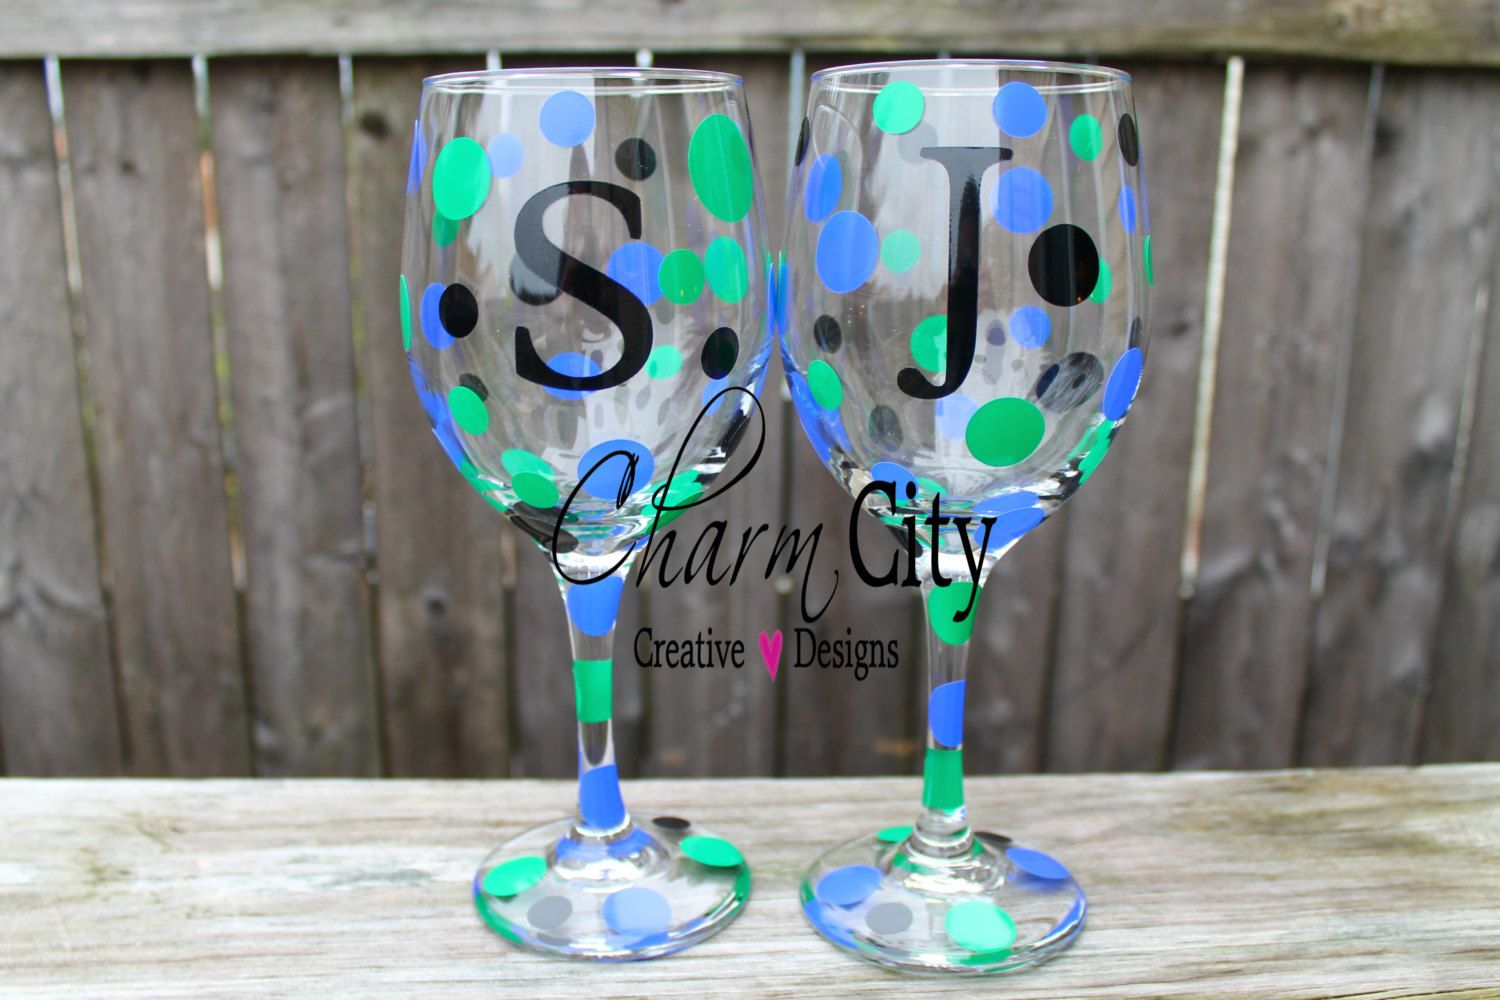 Personalized Wine Glass 20 oz Wedding, Bridal, Party, Birthday, Mother's Day by ahindle78 on Etsy